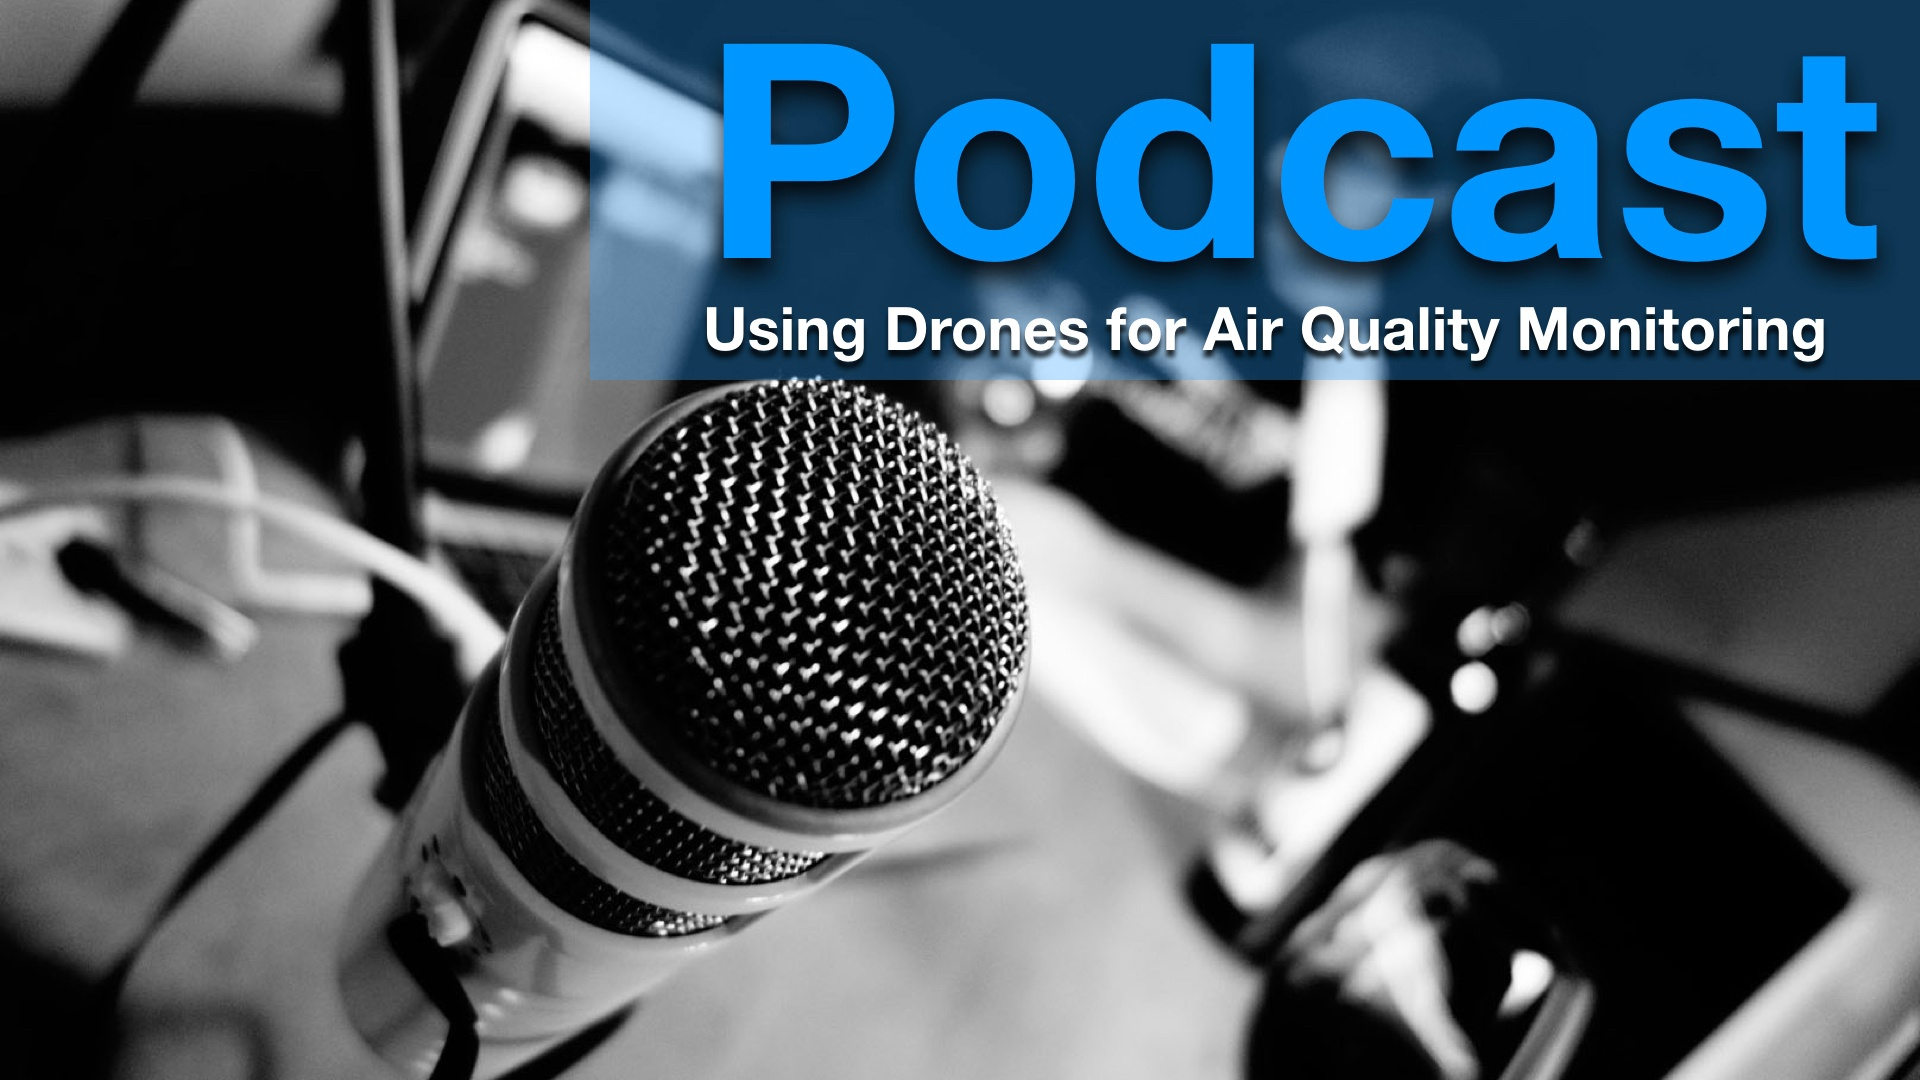 Danny Landry: Drones for Inspection and Air Quality Monitoring